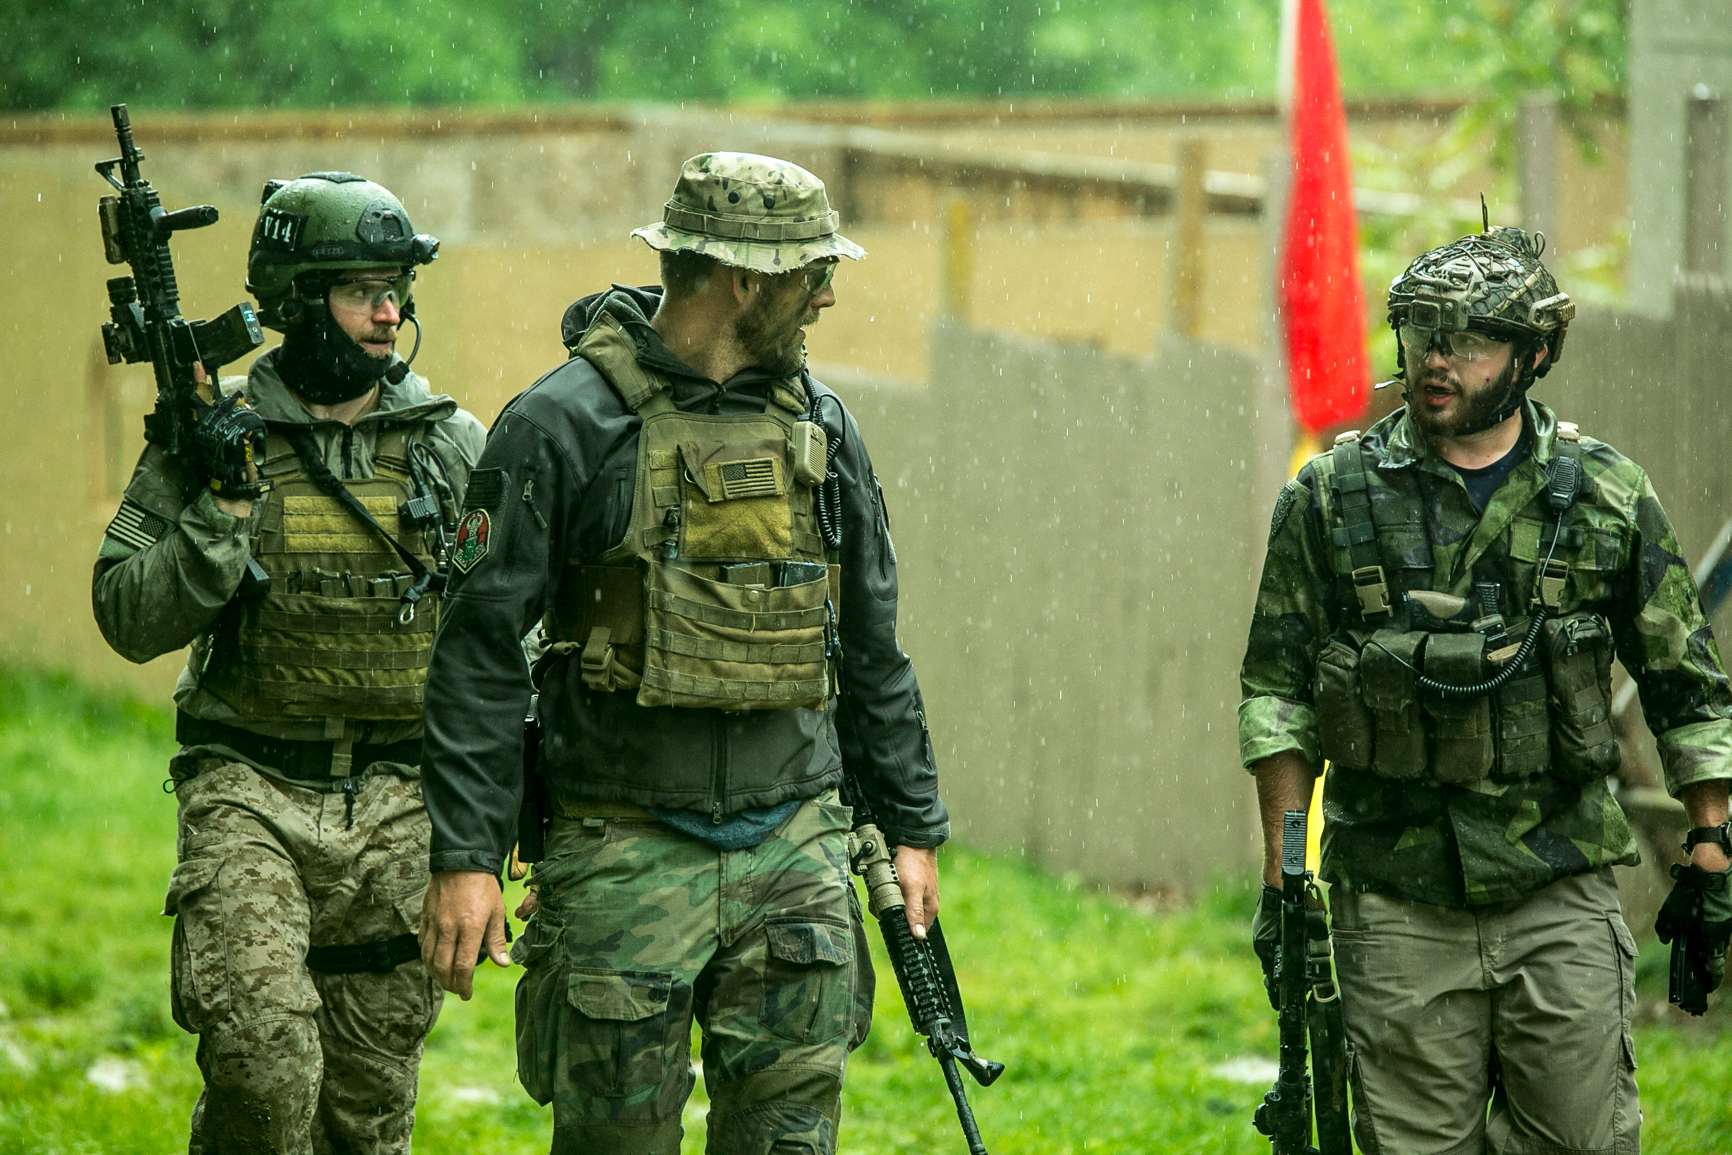 Footage released today from anembedded reporter vividlyportrays the minute-to-minutestruggles that Army troops facein the field. -